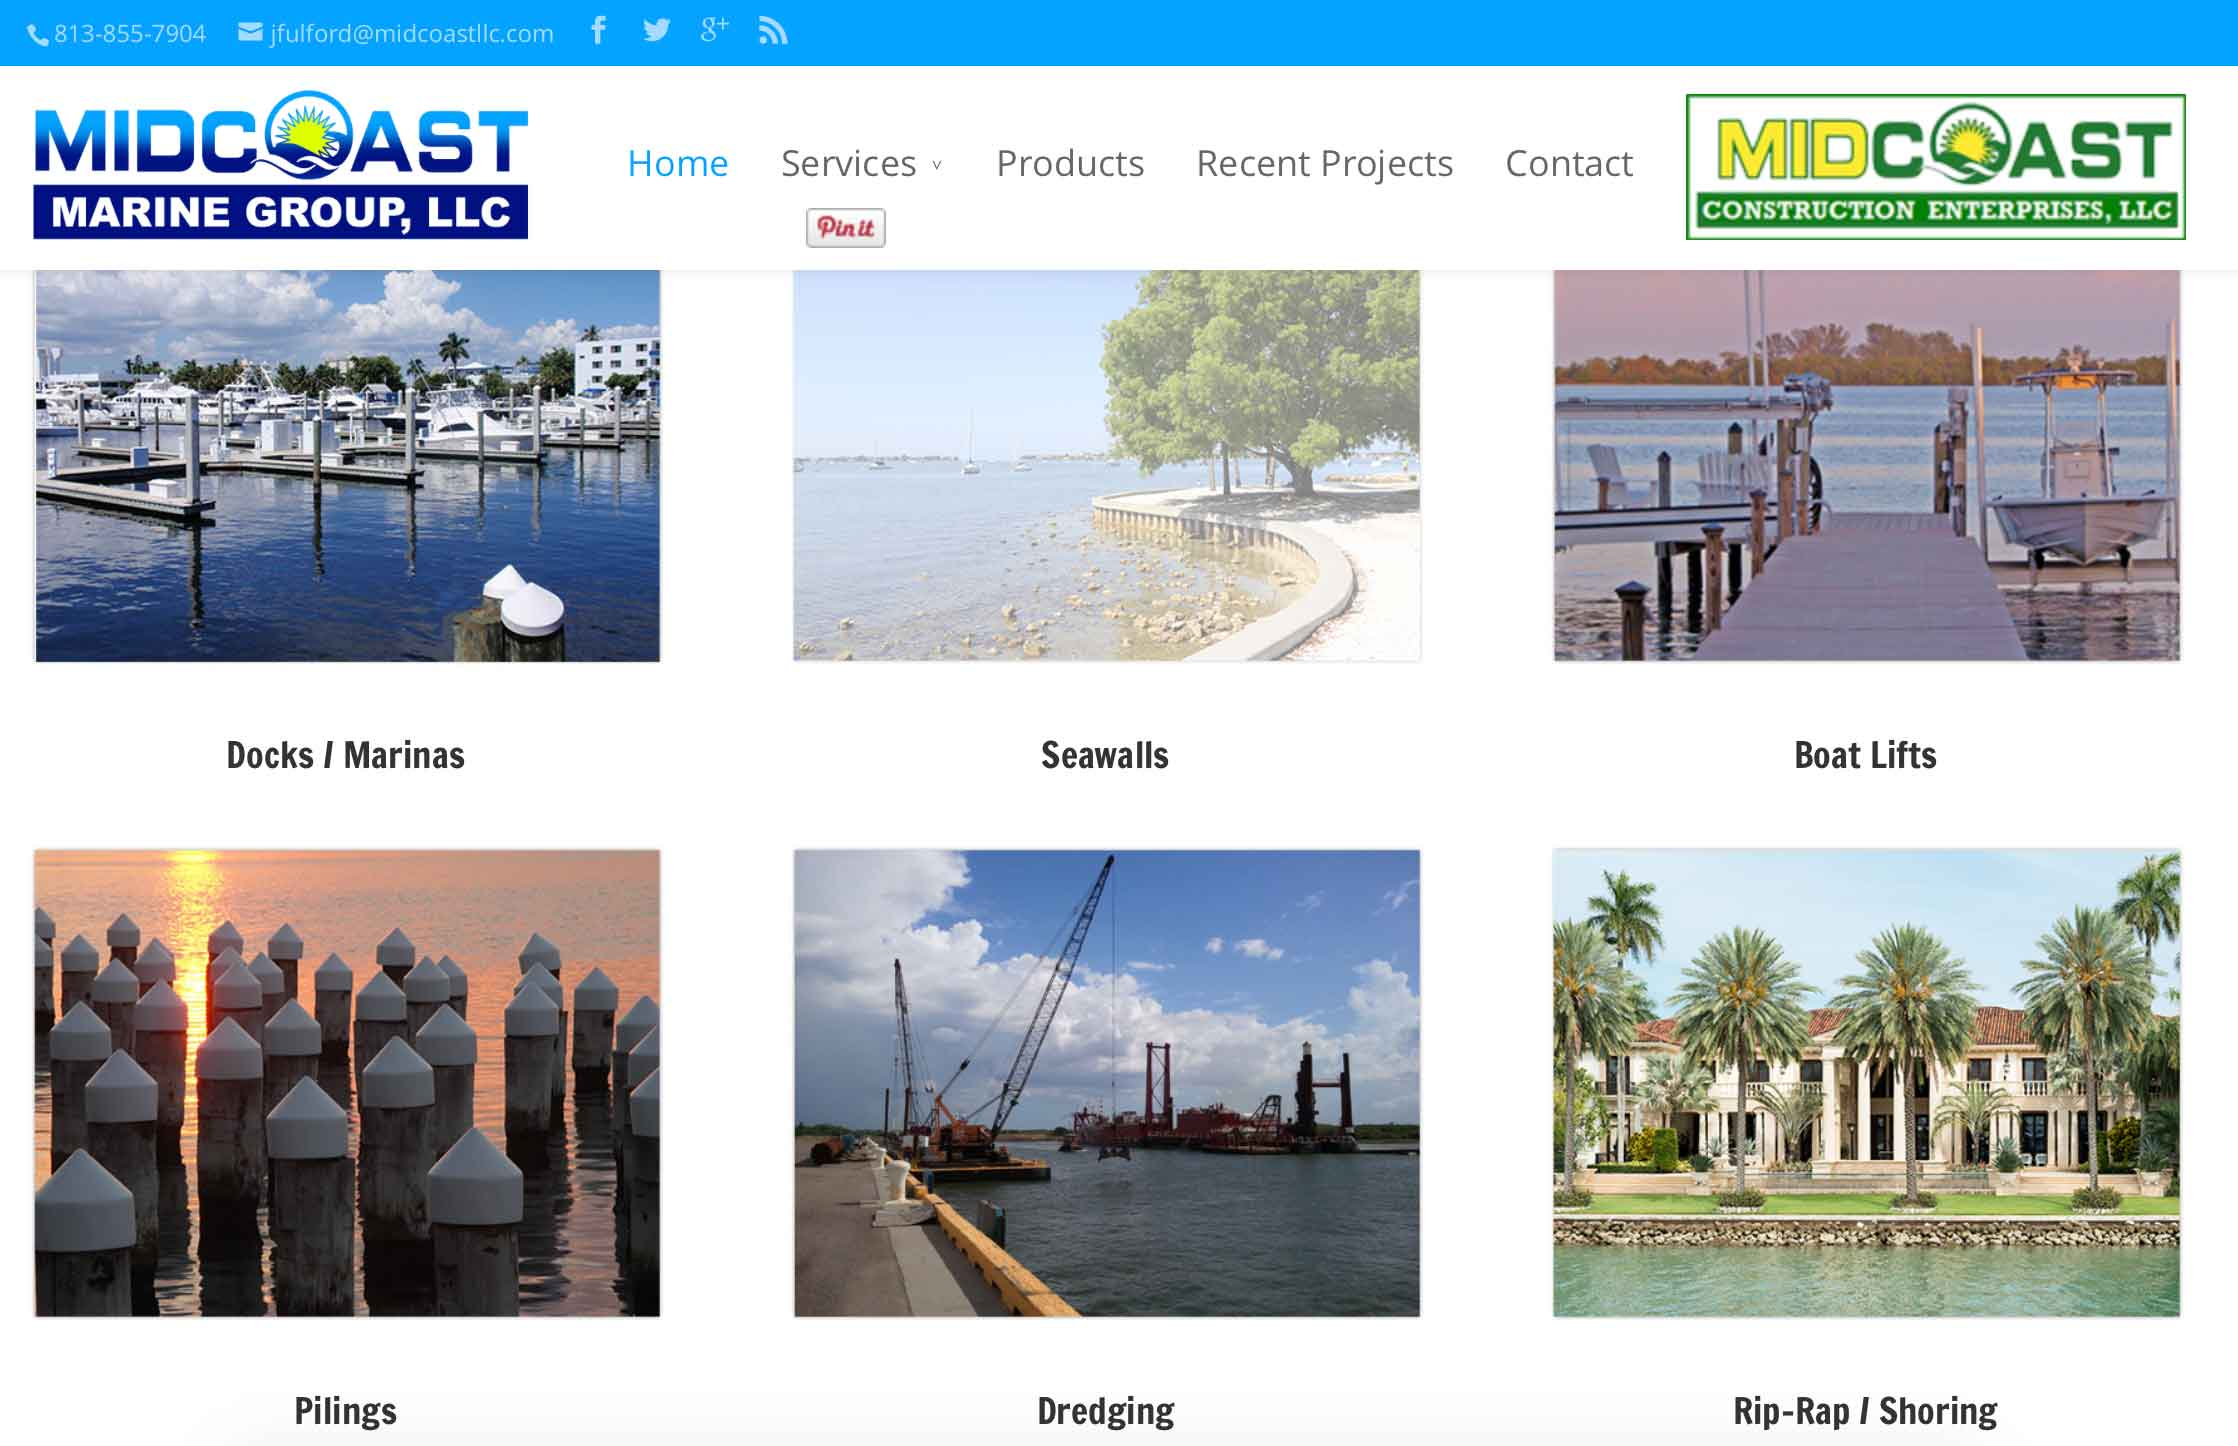 Custom website development by for Midcoast-LLC by Bright Think Marketing